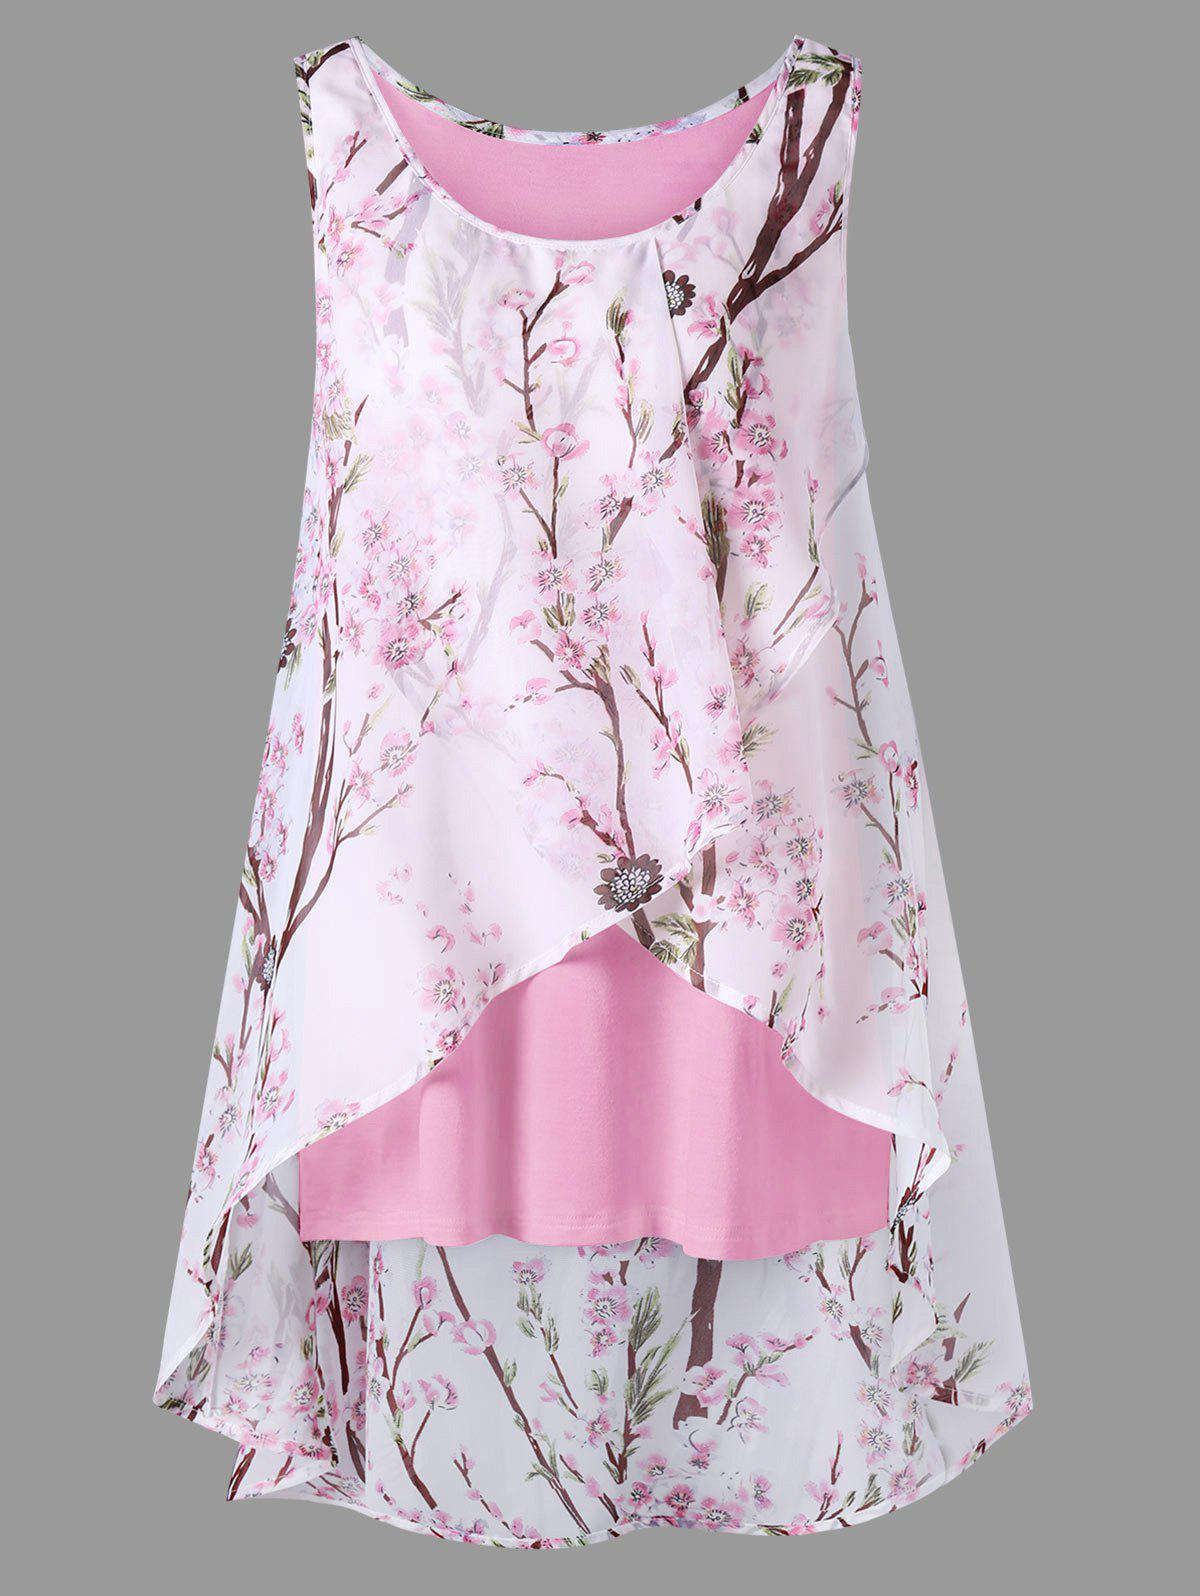 Plus Size Overlap Tiny Floral Sleeveless TopWOMEN<br><br>Size: XL; Color: LIGHT PINK; Material: Polyester; Shirt Length: Long; Sleeve Length: Sleeveless; Collar: Scoop Neck; Style: Casual; Season: Summer; Pattern Type: Floral; Weight: 0.2700kg; Package Contents: 1 x Blouse;